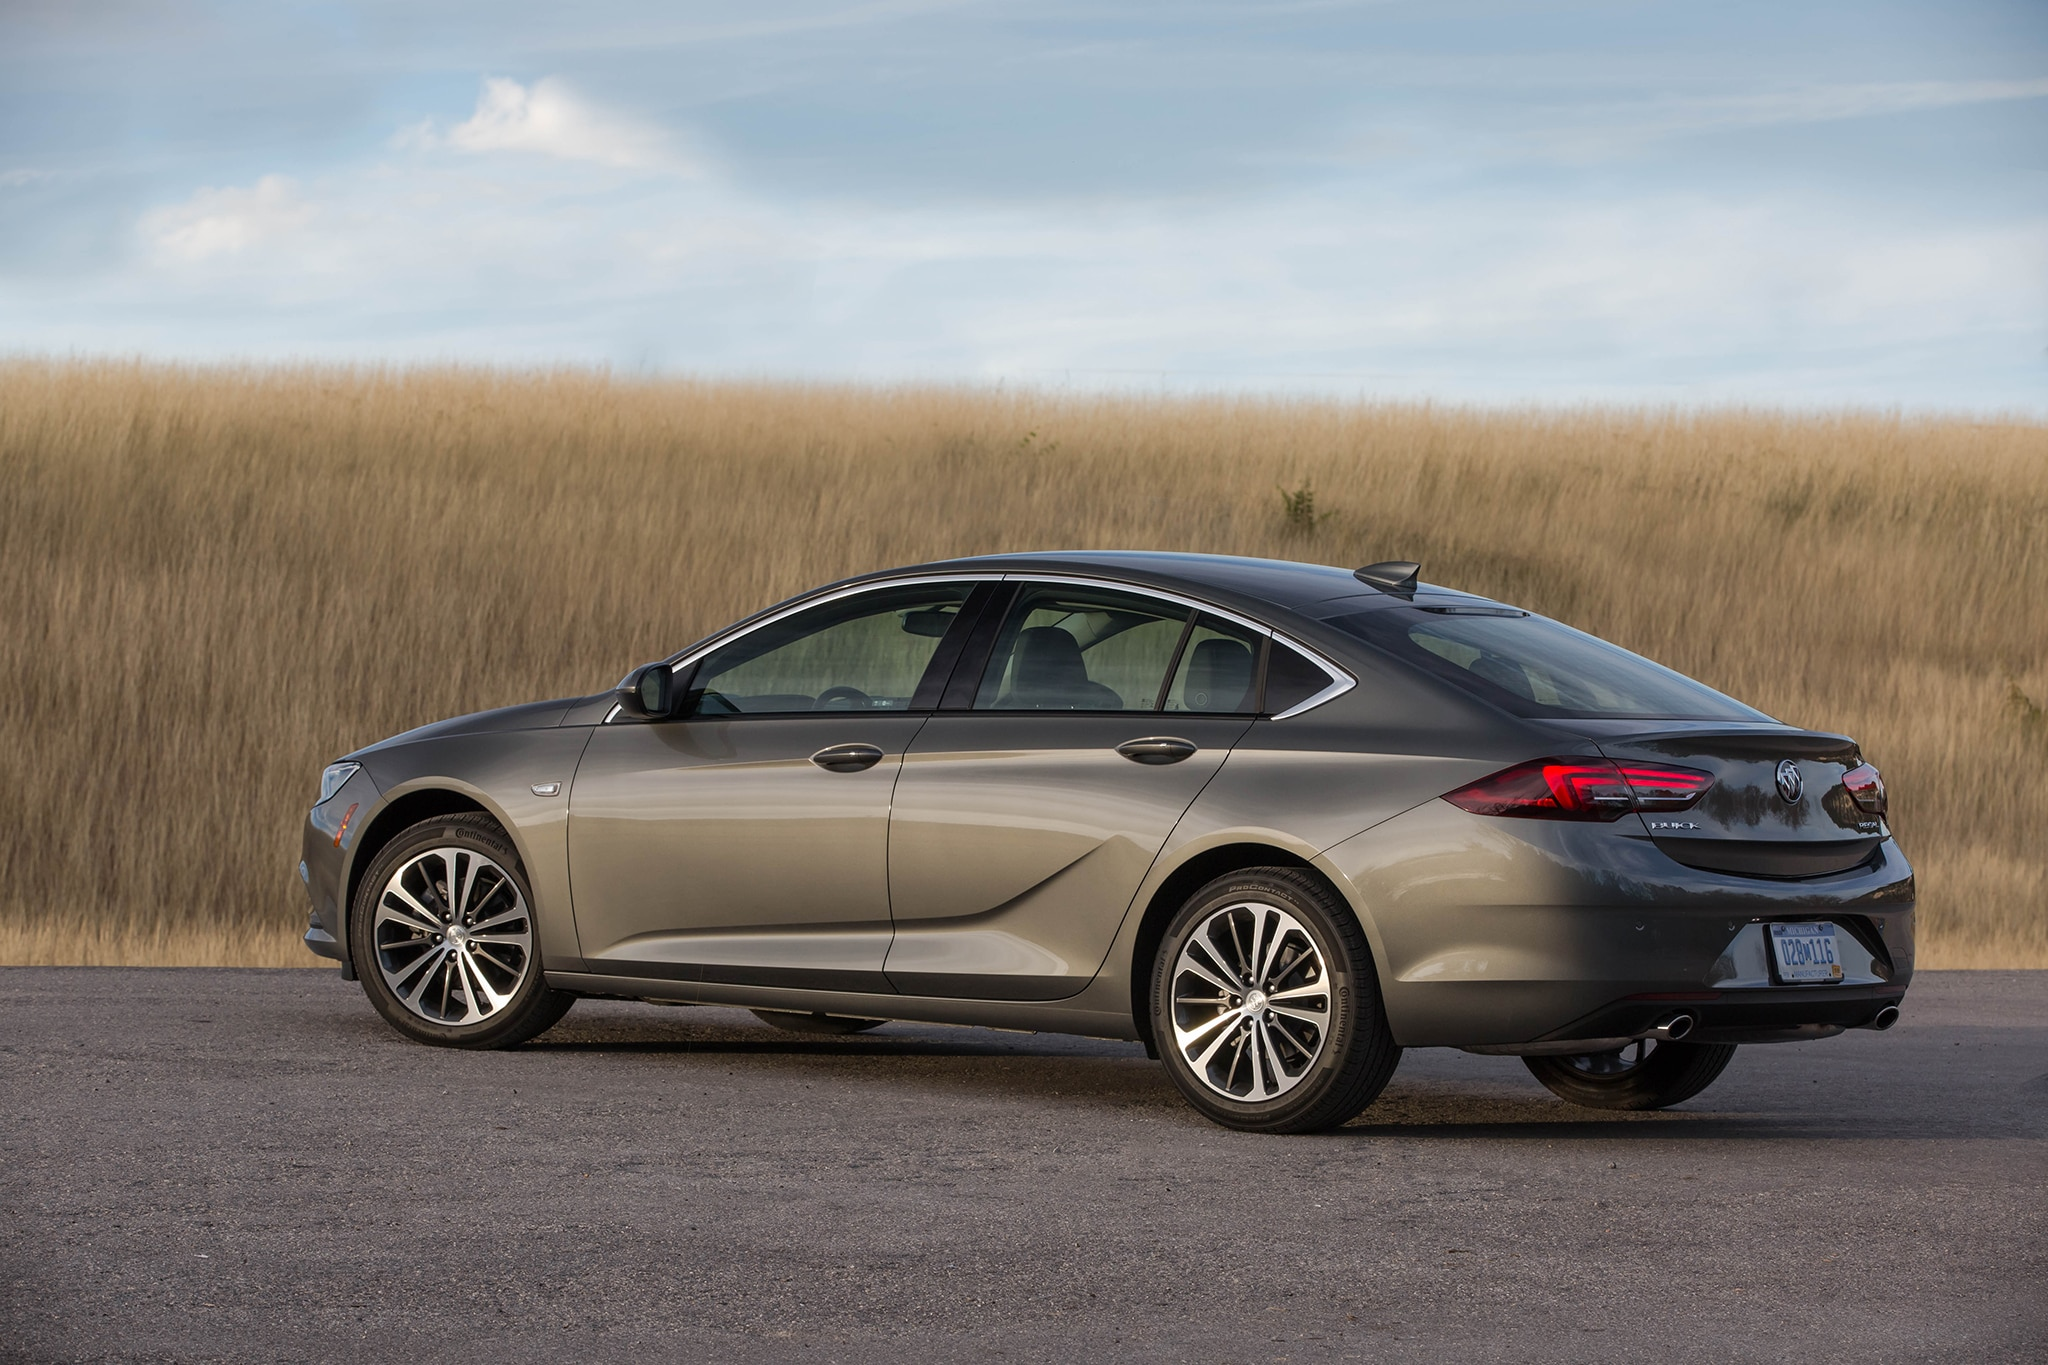 2018 Buick Regal Sportback First Drive Review | Automobile ...